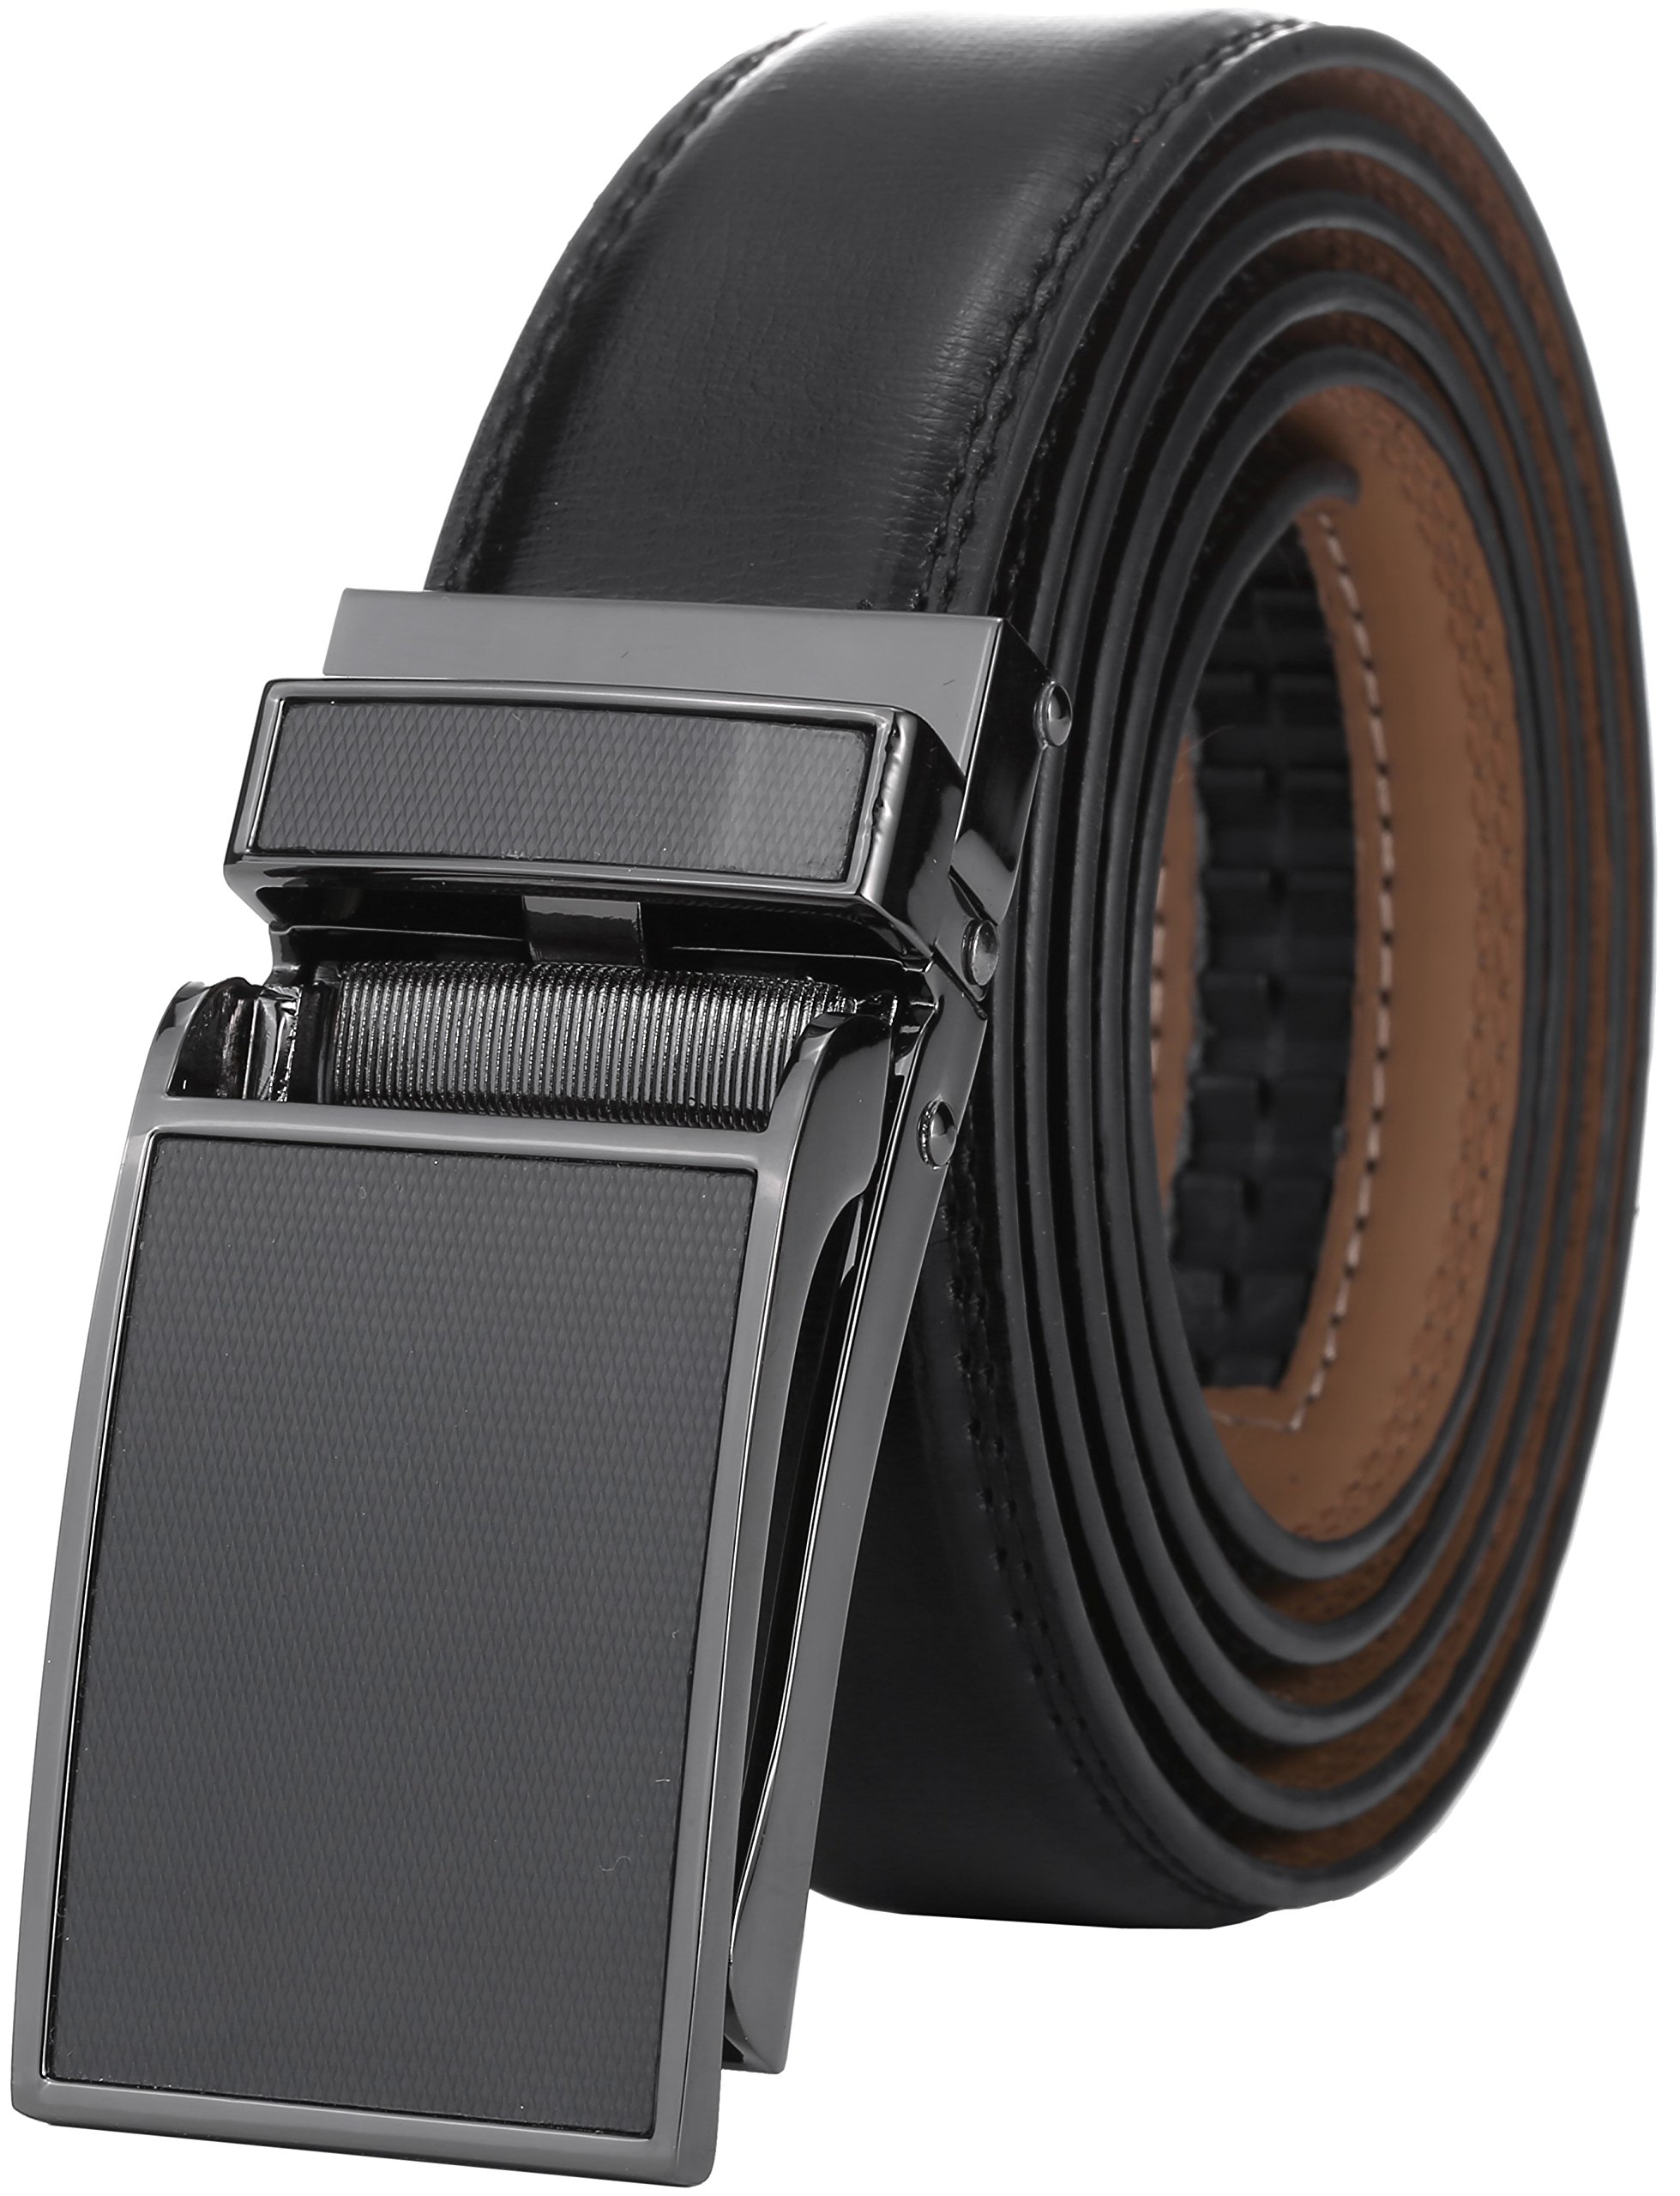 Marino Avenue Men's Genuine Leather Ratchet Dress Belt with Linxx Buckle, Enclosed in an Elegant Gift Box - Black Lattice Design Buckle W/Black Leather - Adjustable from 38'' to 54'' Waist